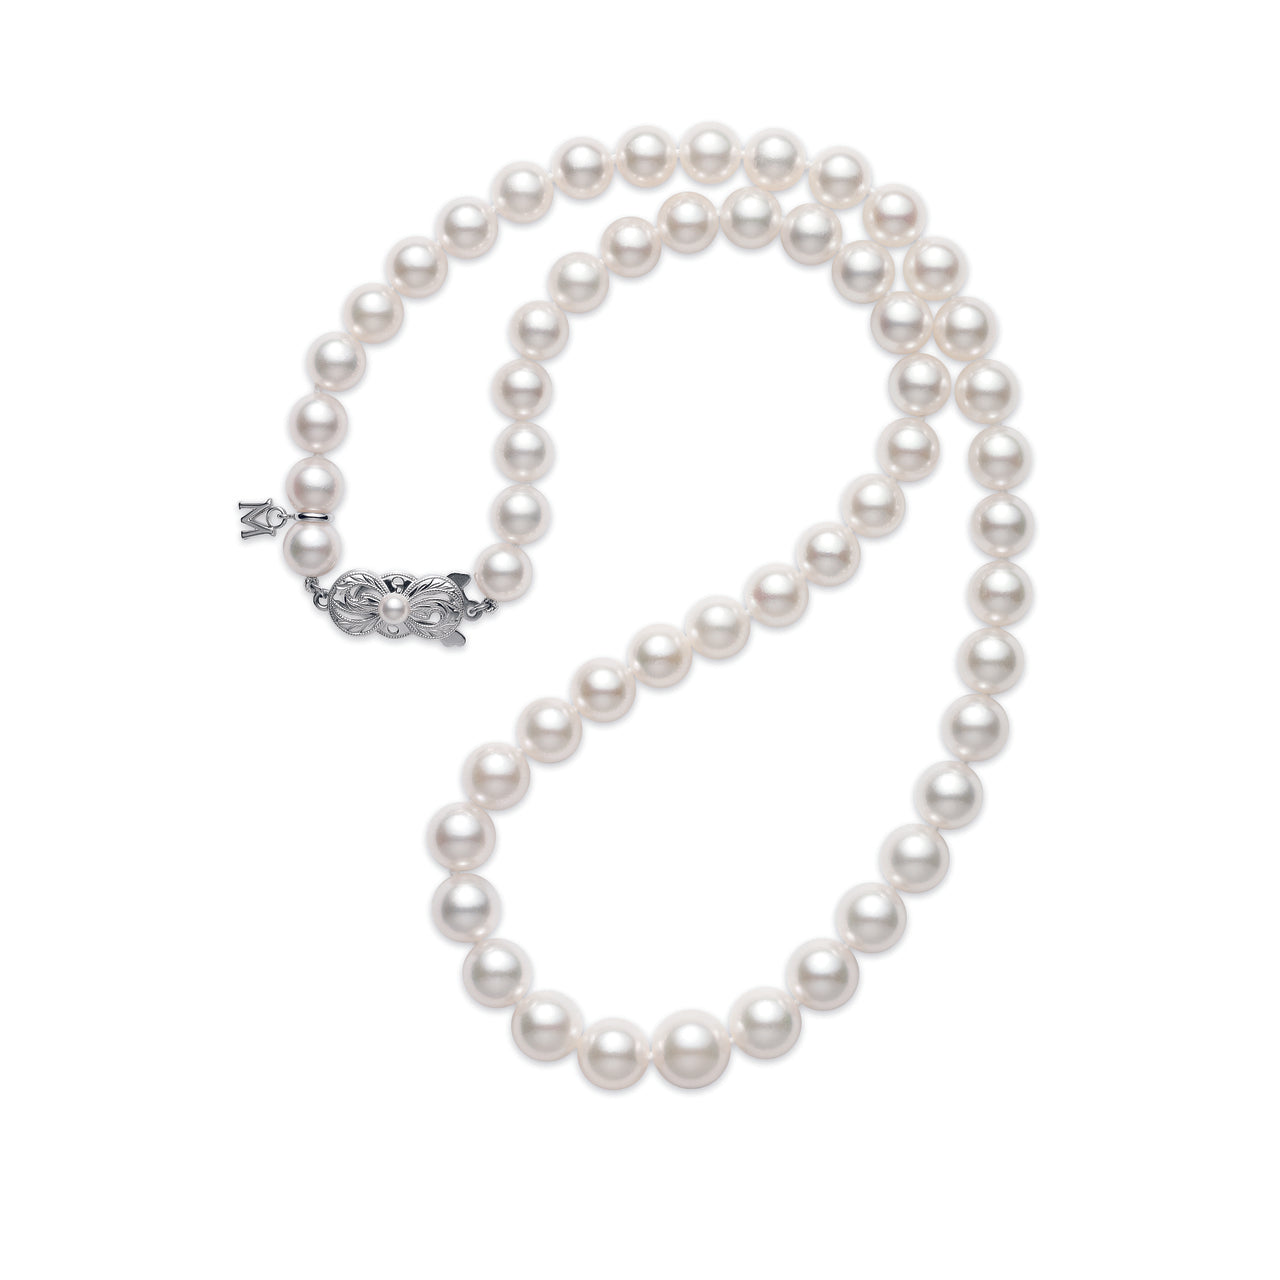 Mikimoto Everyday Essentials Graduated A1 9x7mm Akoya Pearl Necklace